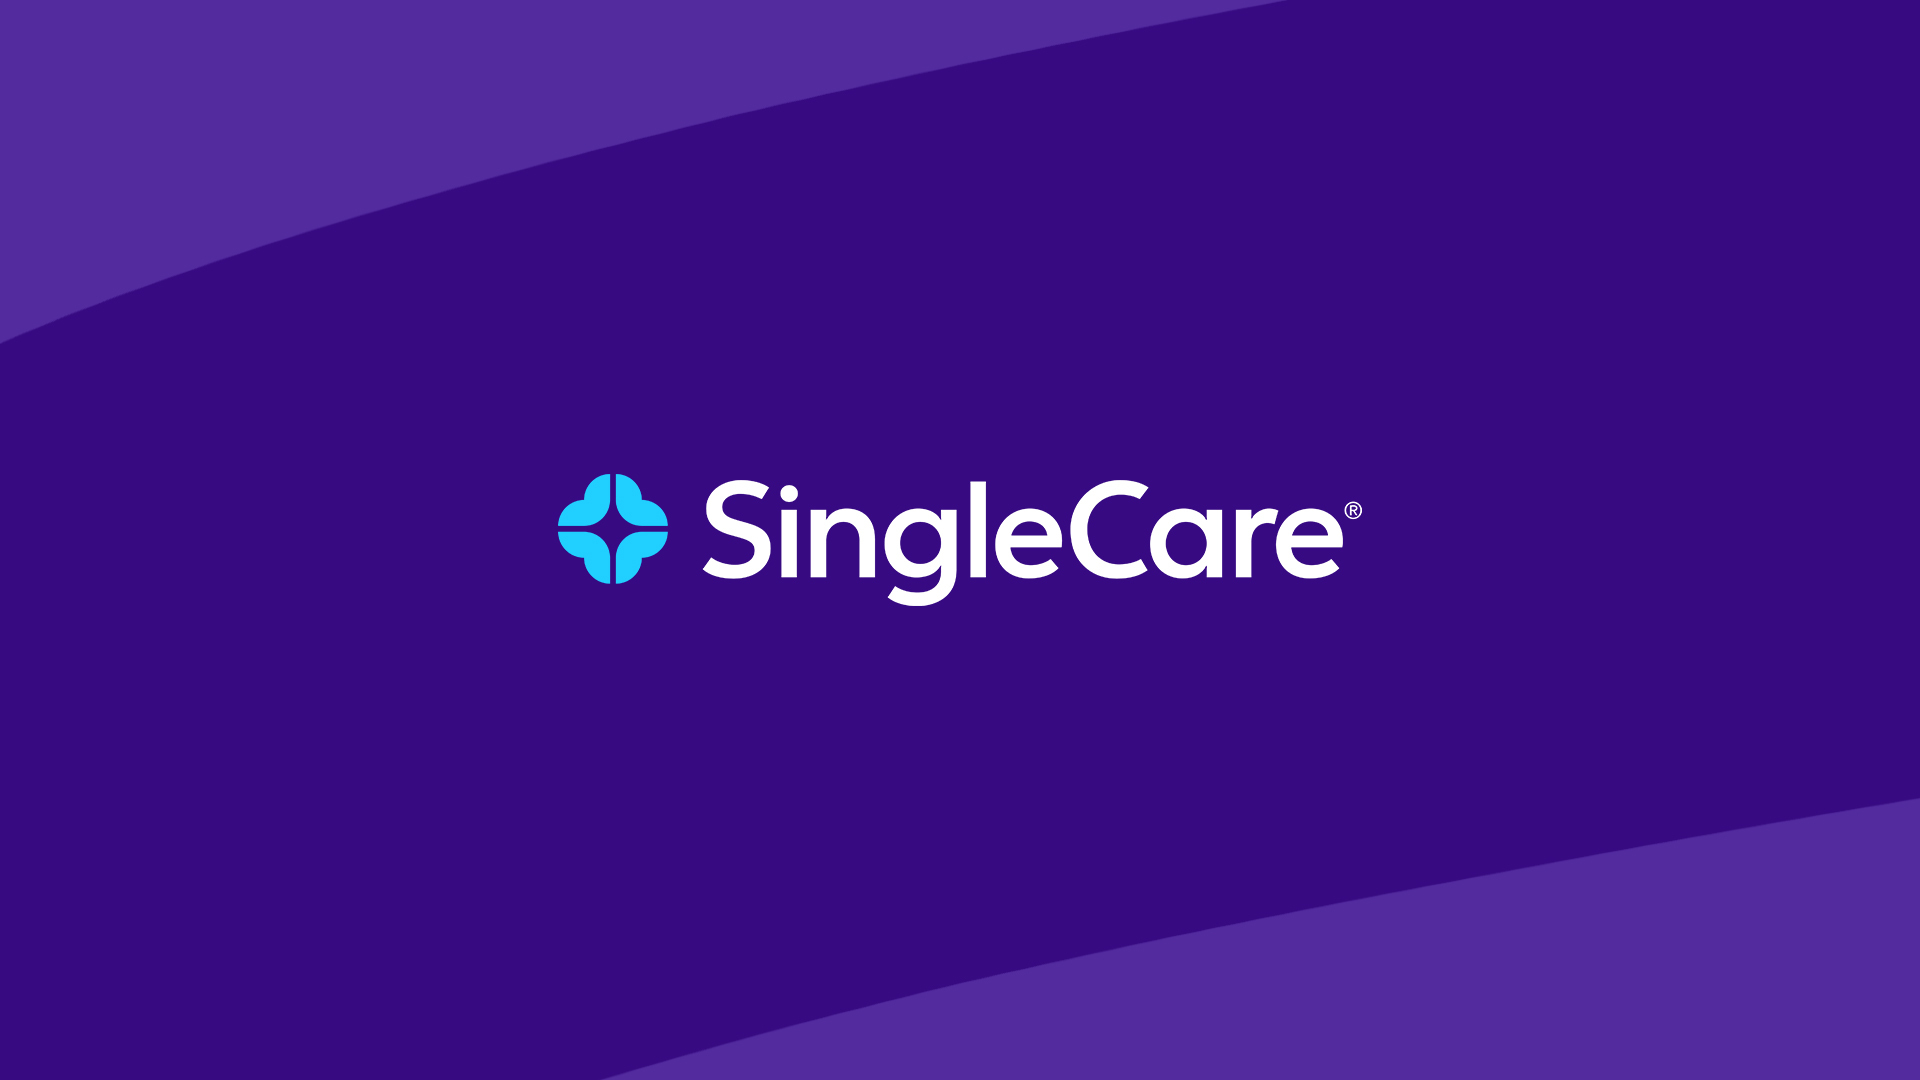 SingleCare wins 2021 Silver Stevie Award for Most Valuable Corporate Response